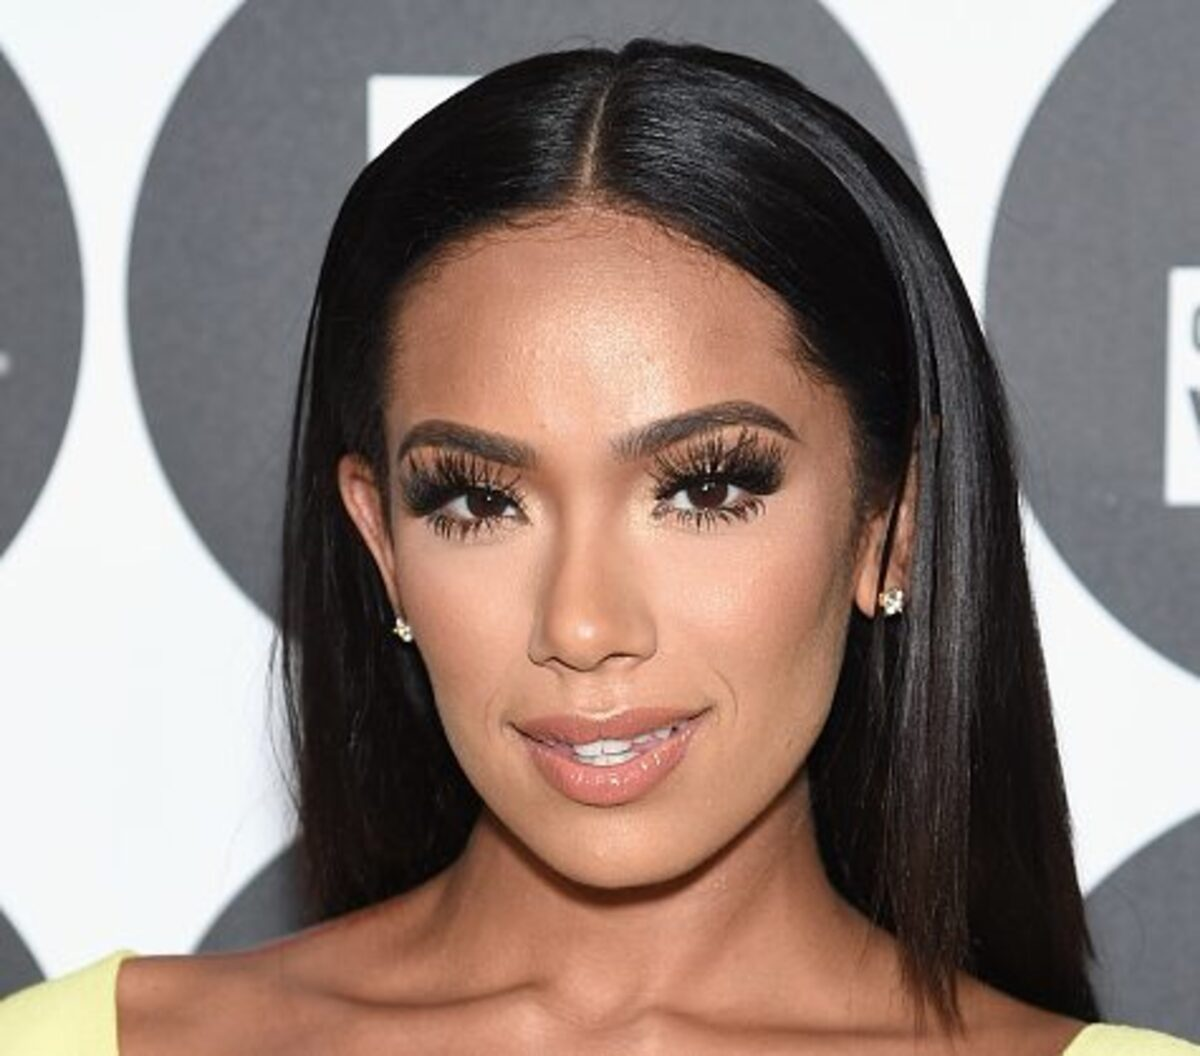 Erica Mena Is Strong To The Core – Check Out Her Amazing Figure That Makes Safaree Samuels Crazy